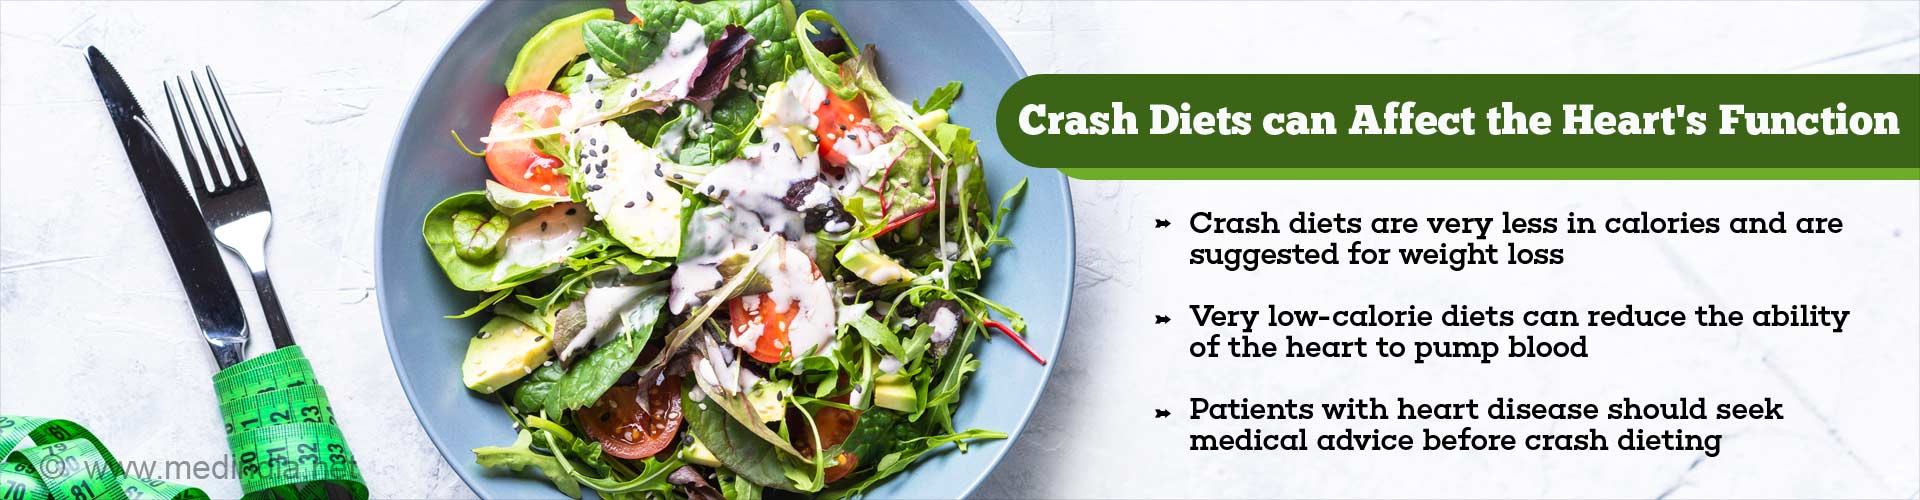 crash diets can affect the heart's function